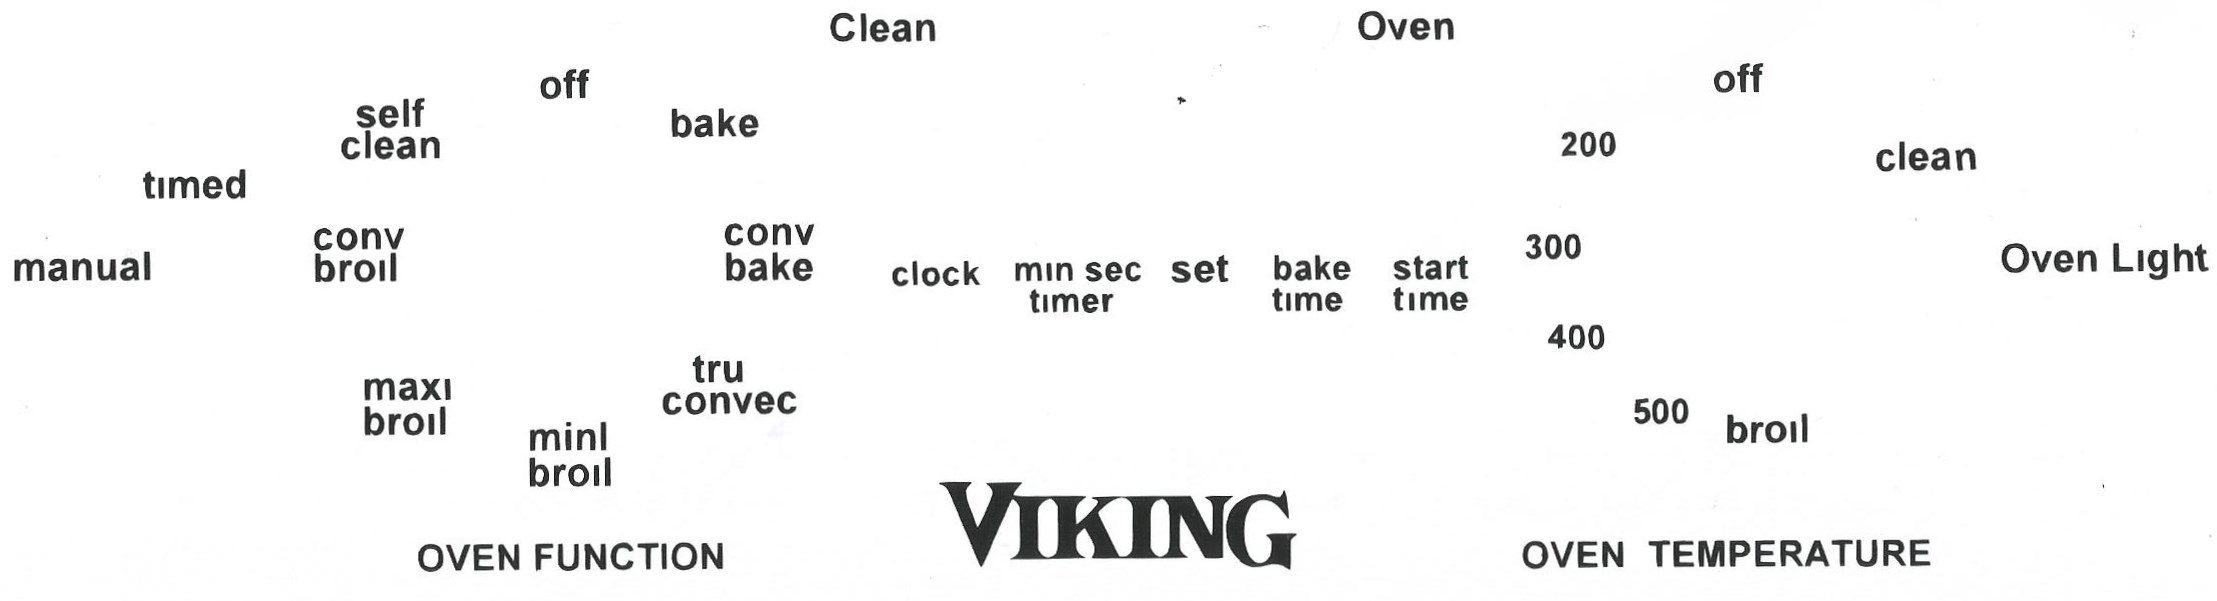 viking oven decals